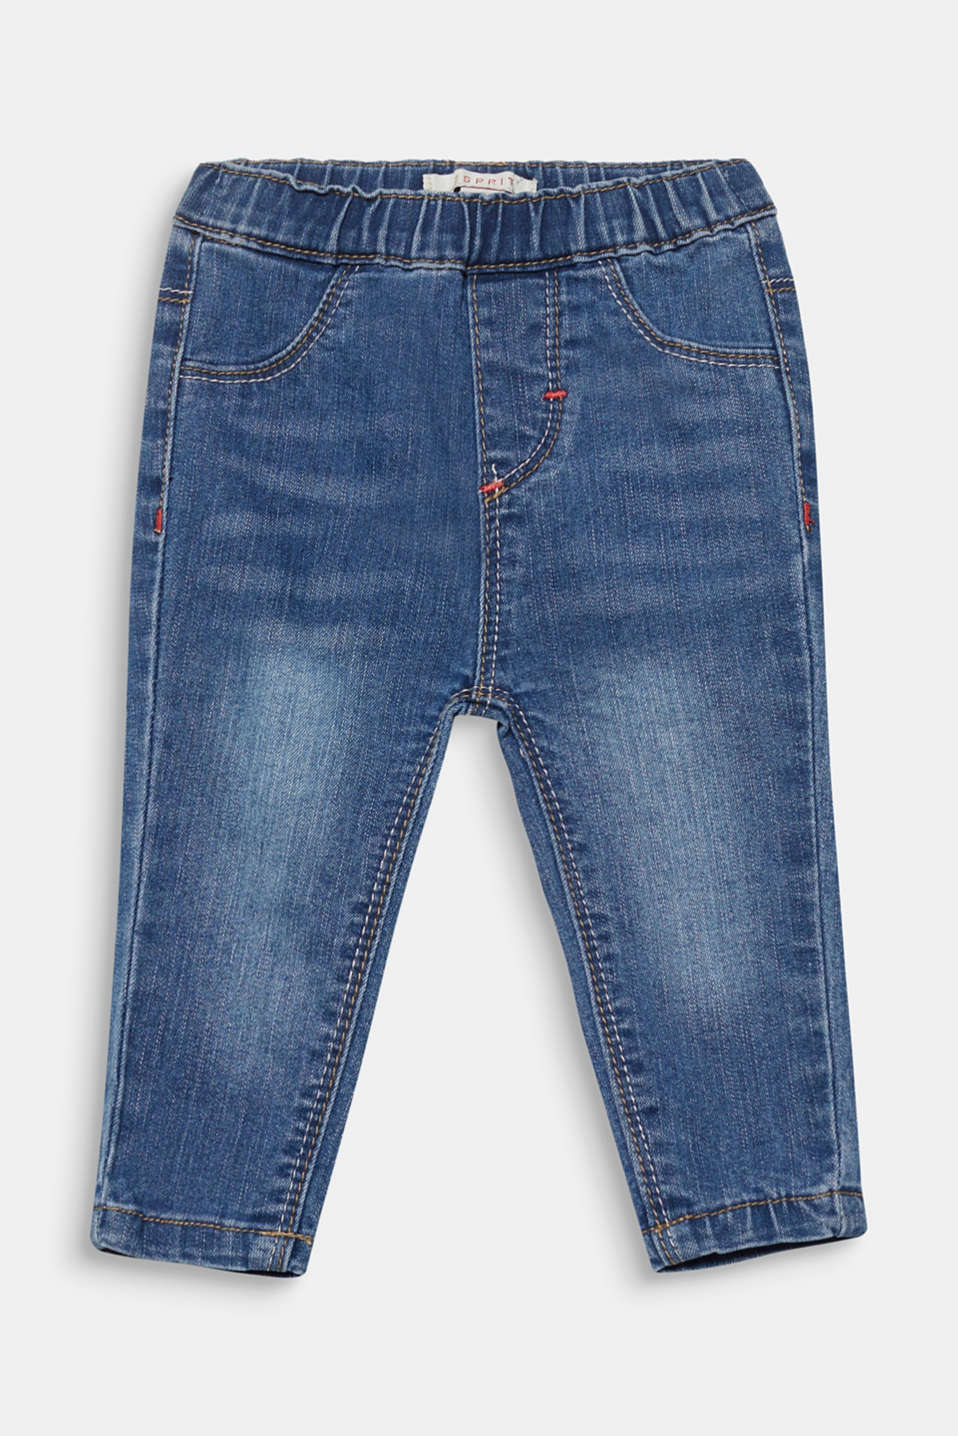 Esprit - Elasticated stretch jeans with washed effects